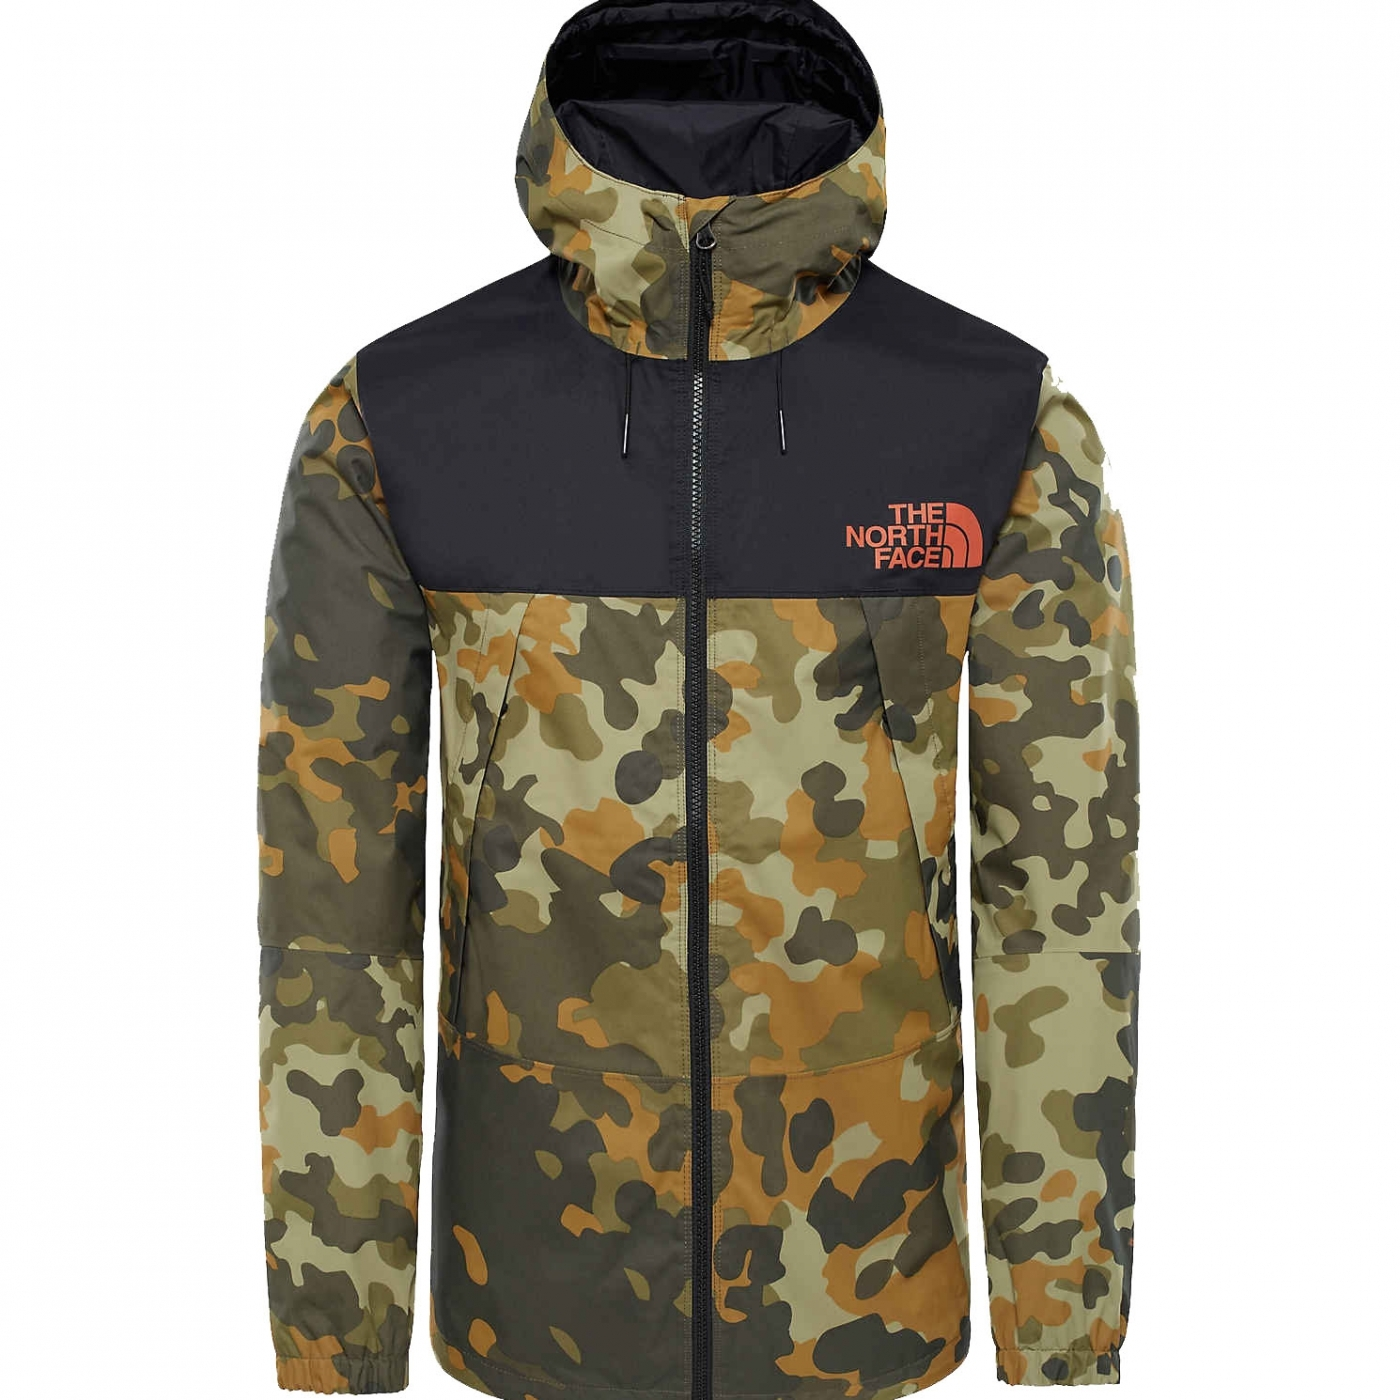 cerca autentico la più grande selezione del 2019 ultime tendenze del 2019 Veste The North Face Mountain Q 1990 Taupe Green | Alltricks.com